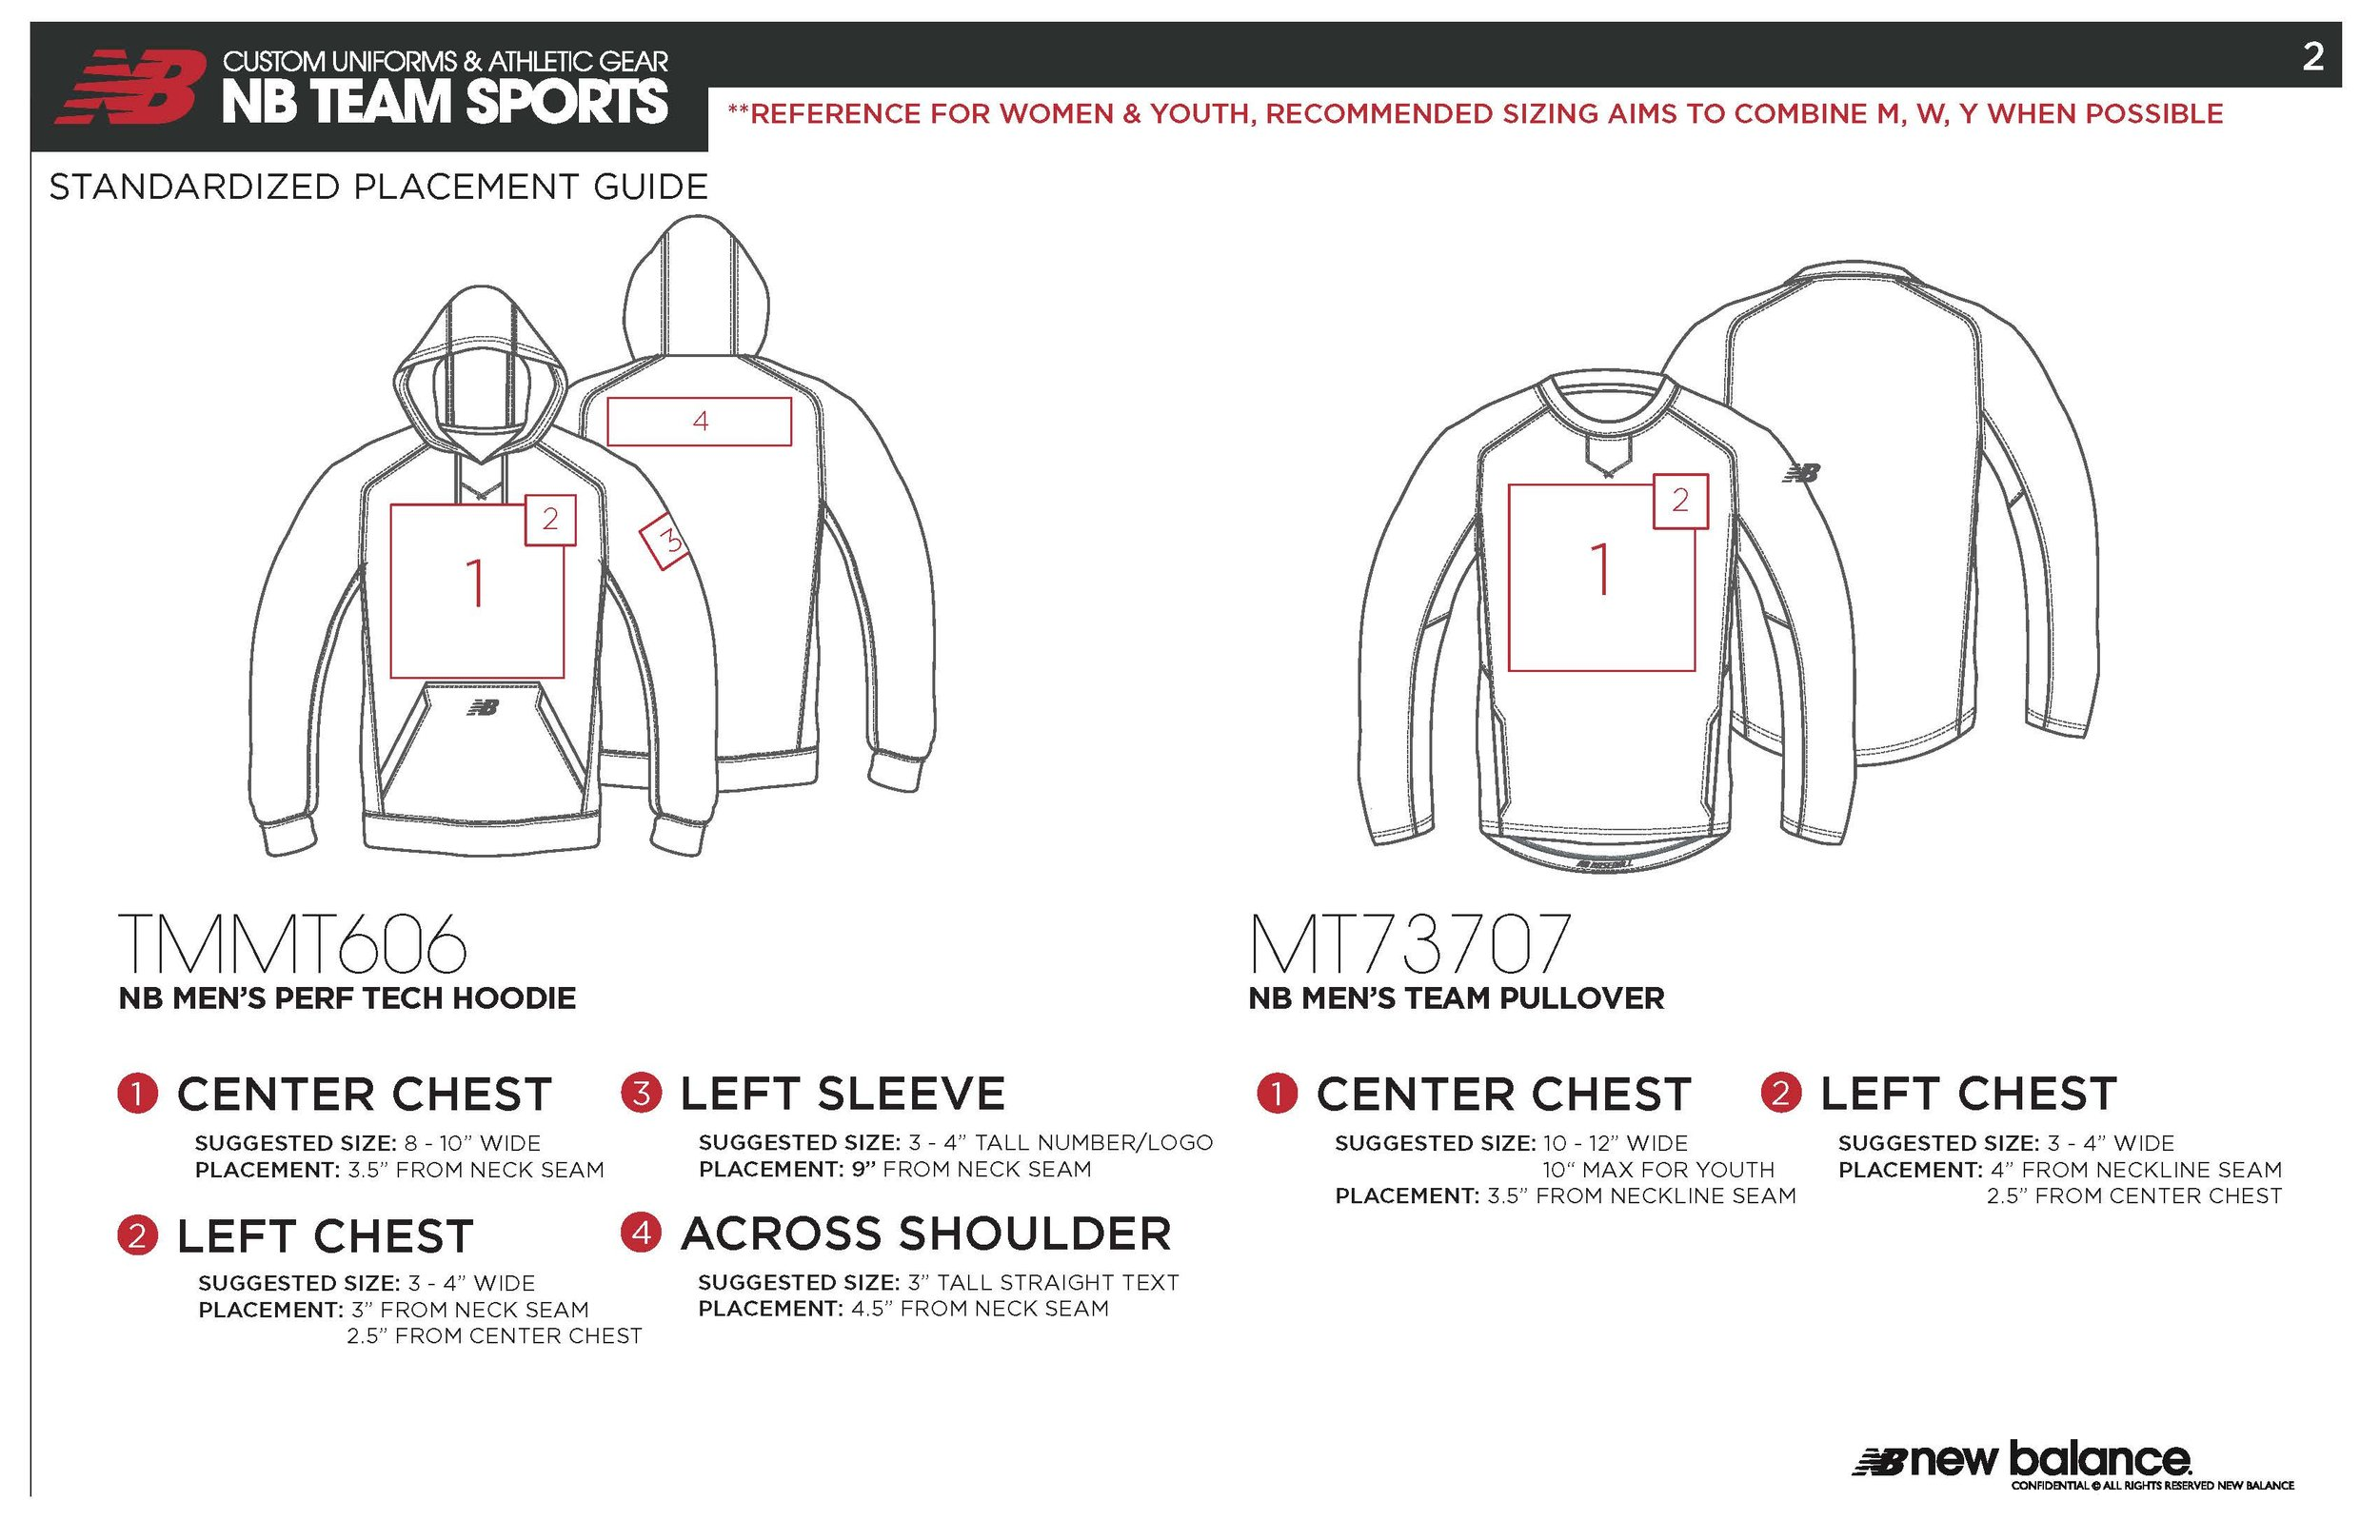 TEAMWEAR_Standardized Placement Guide Final_Page_2.jpg